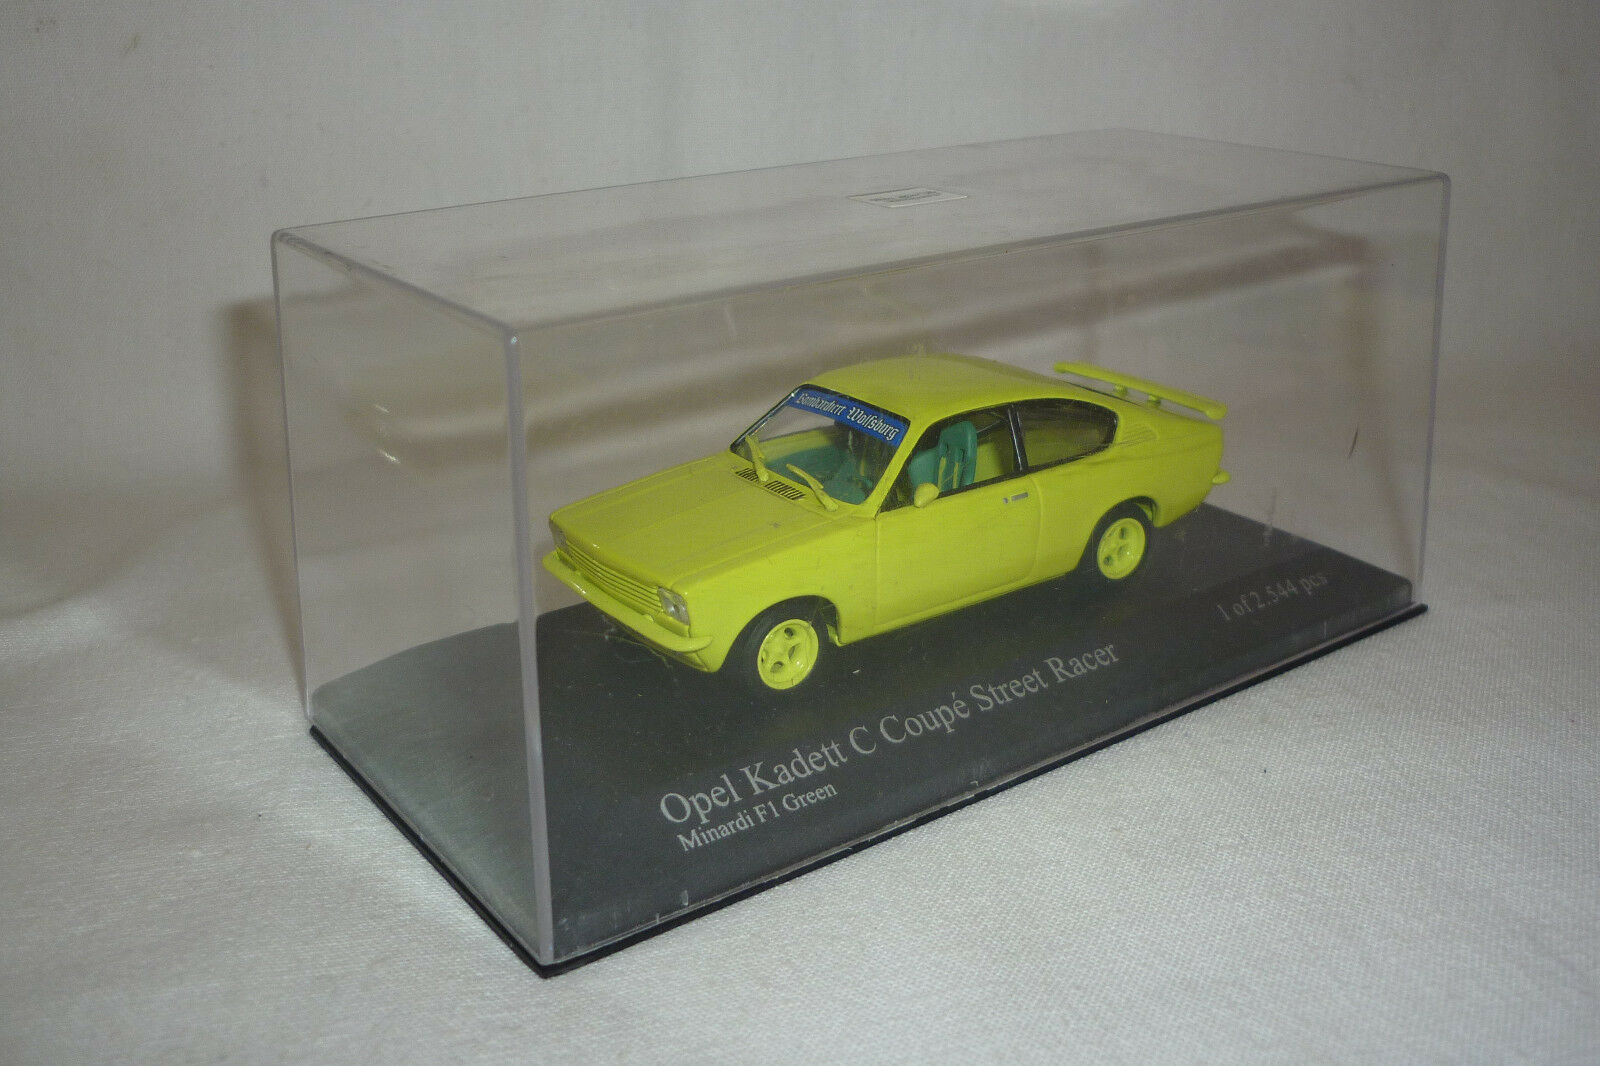 Minichamps Paul's Model Art- Metal Model - Opel Kadett - 1 43 - Ovp - (5.div-58)